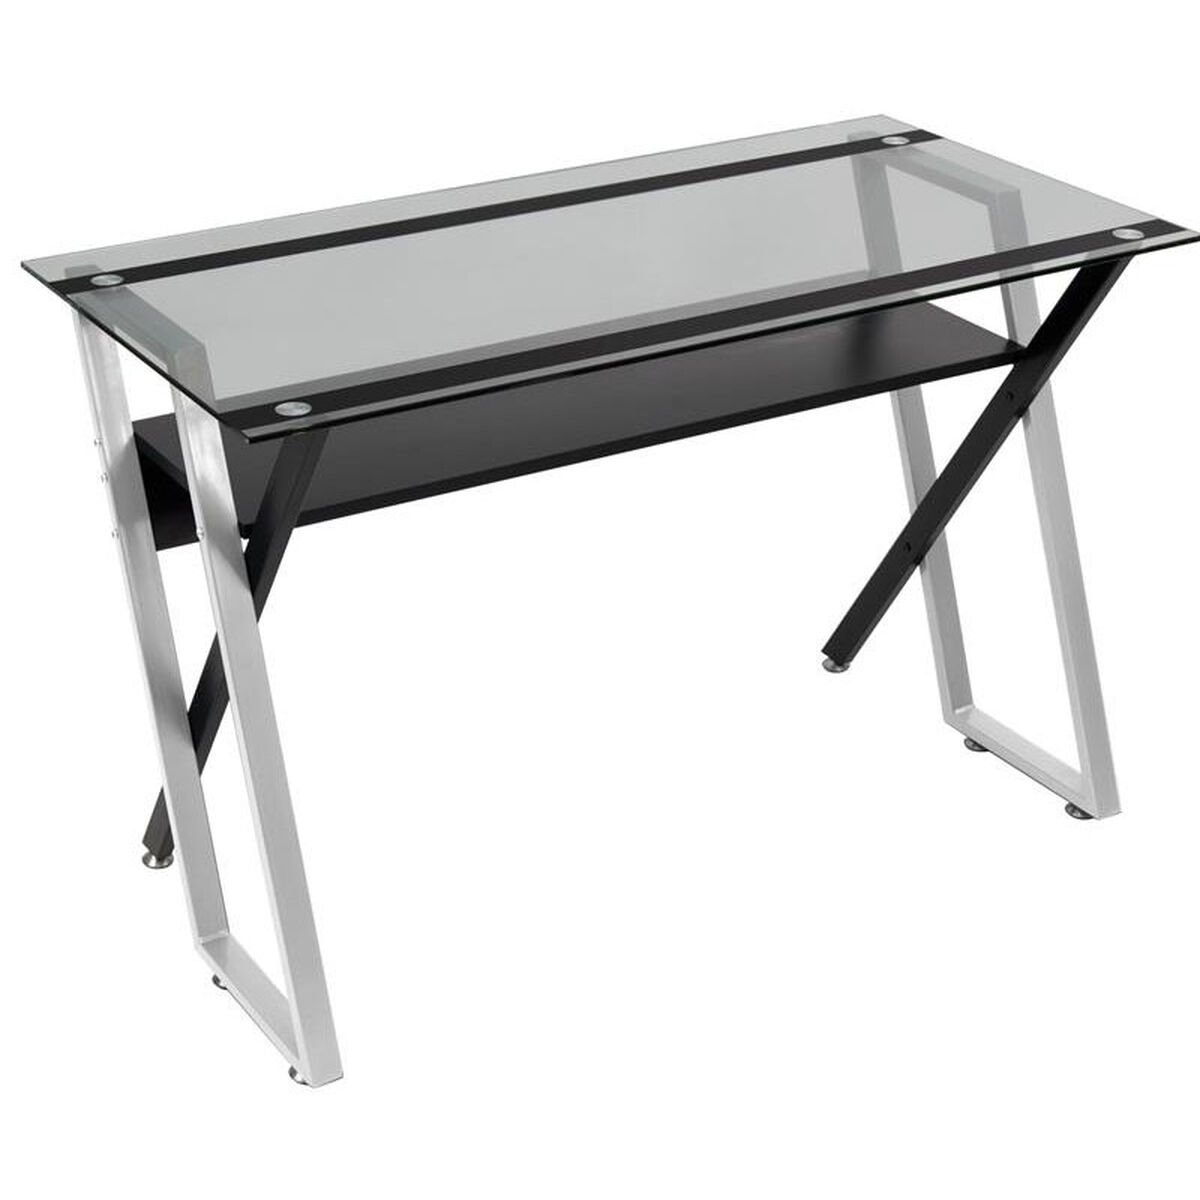 Our Colorado Clear Tempered Glass And Steel Desk With Criss Crossed Legs Black